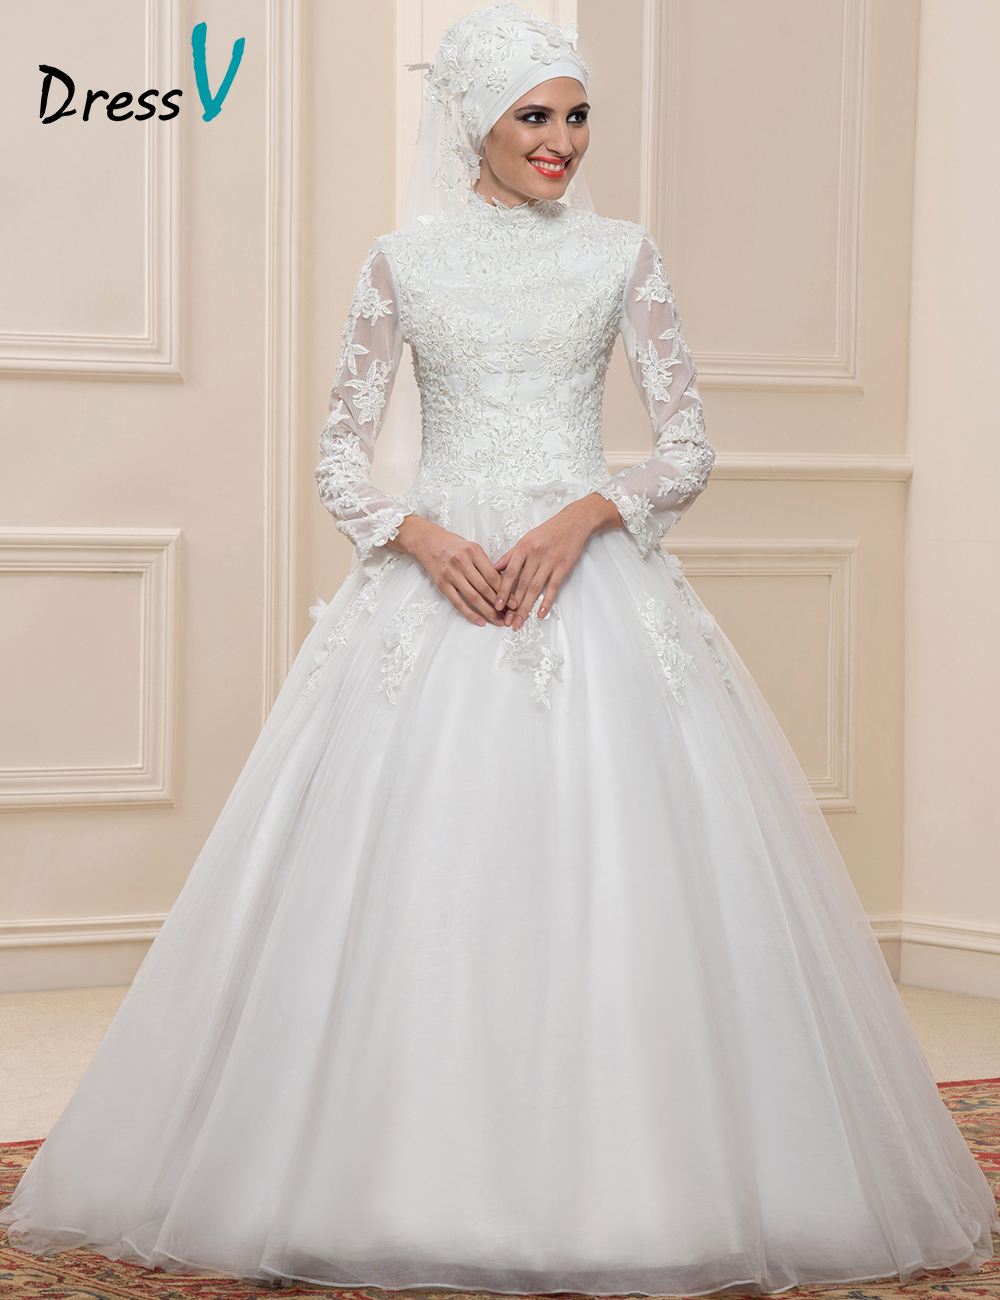 Dressv Muslim Lace Ball Gown Wedding Dresses Long Sleeves